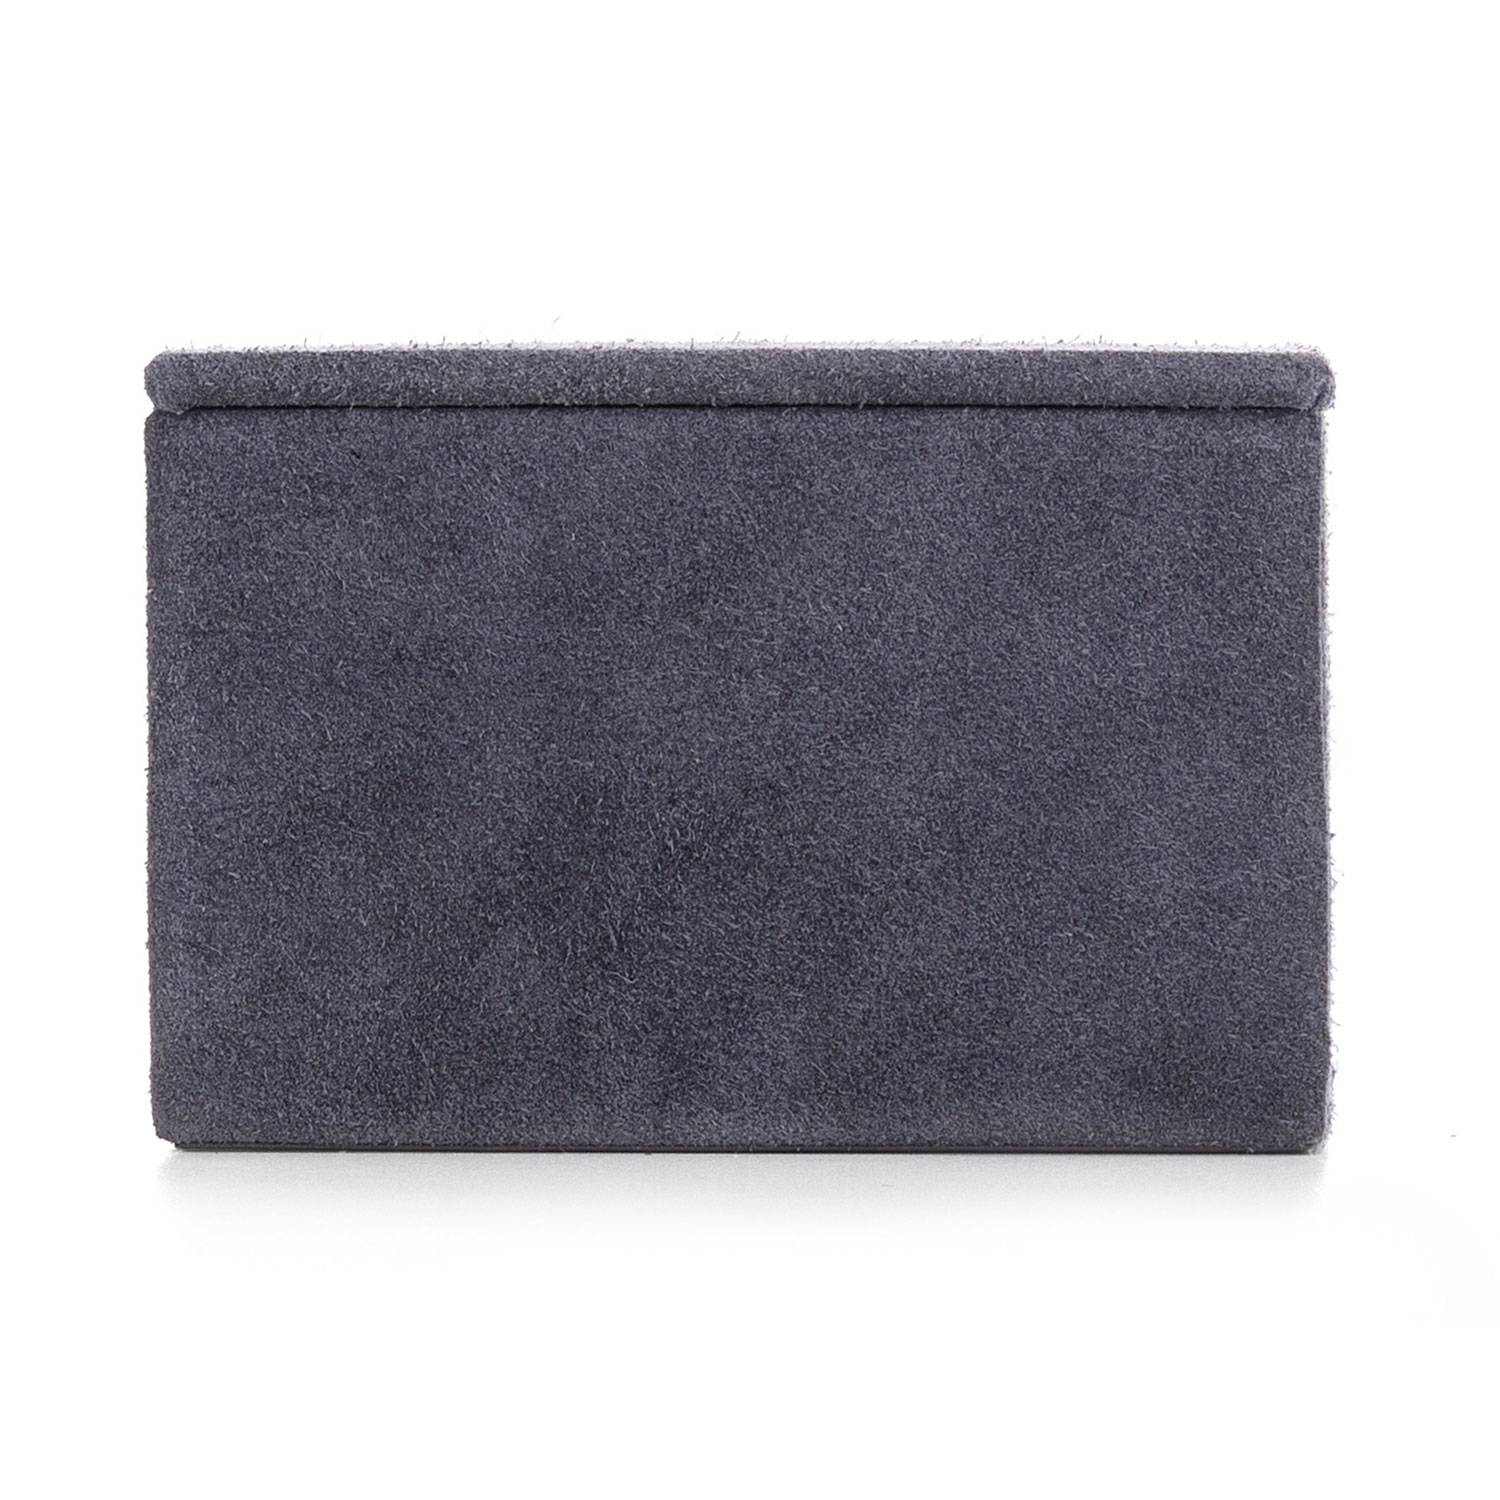 Nordstjerne Suede Box Small, Stone Grey